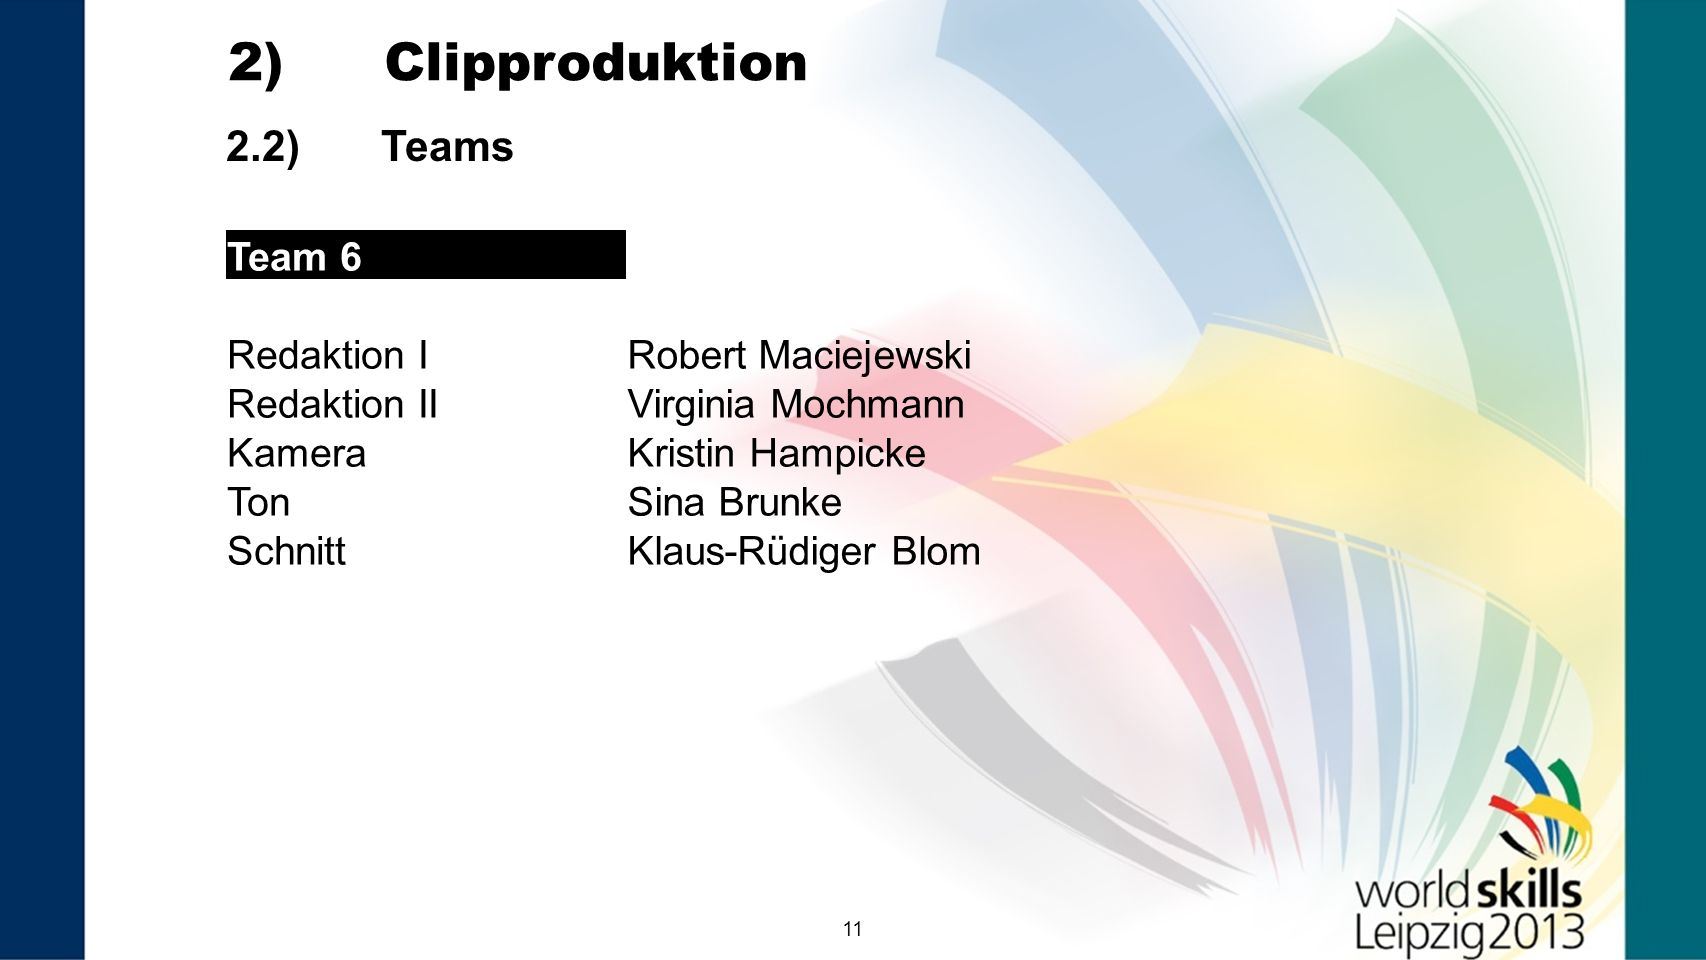 2) Clipproduktion 2.2) Teams Team 6 Redaktion I Robert Maciejewski